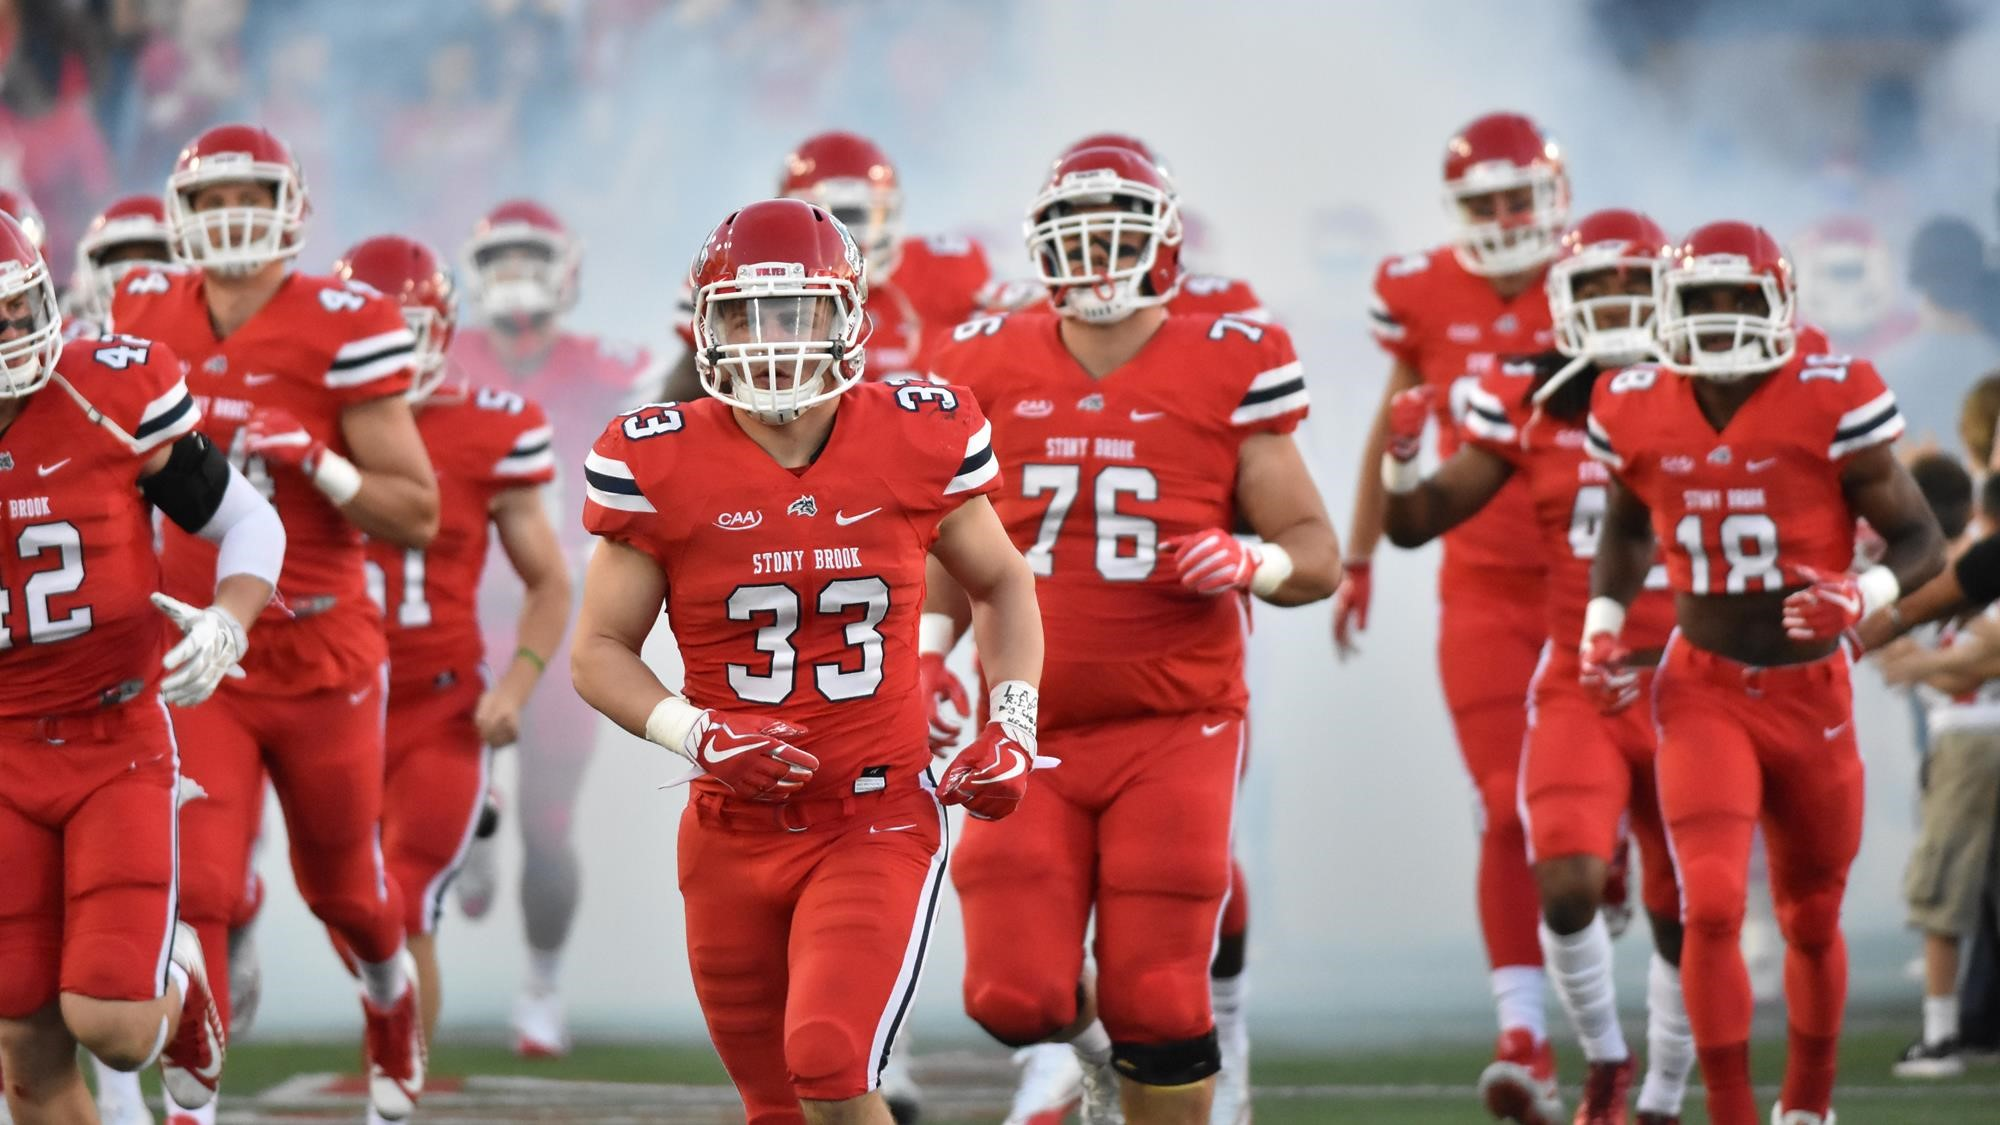 FIRST LOOK: 1st Round of FCS Playoffs: The Stony Brook Seawolves